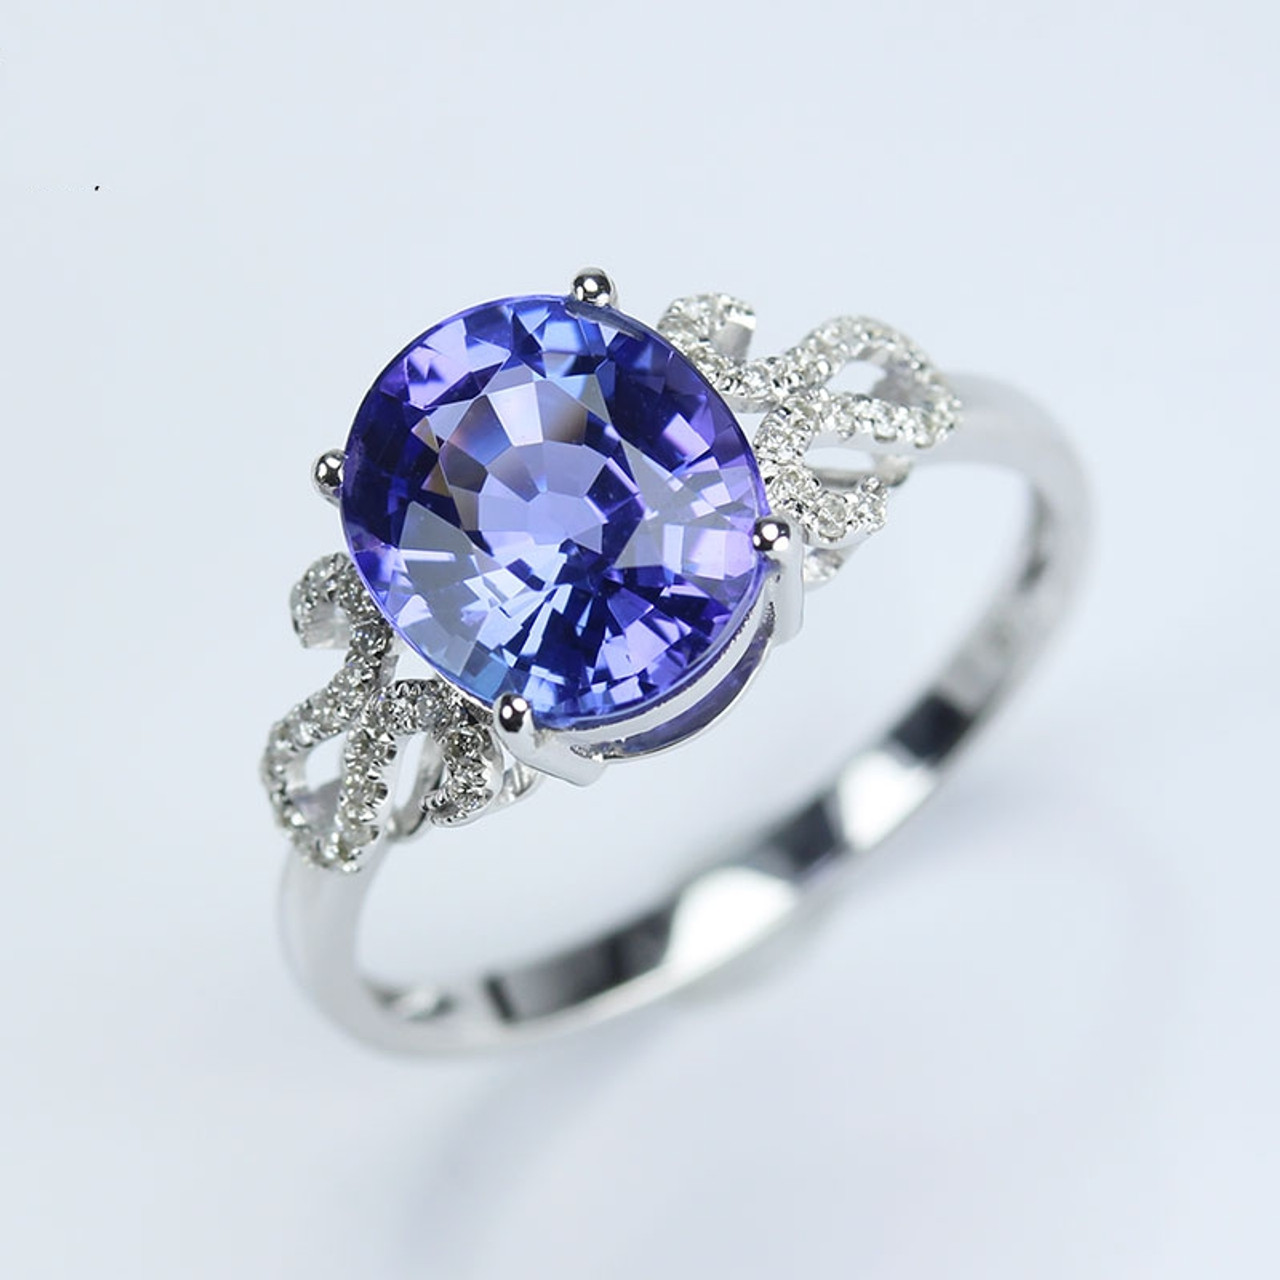 quality of a qualities all is colors tanzanite and available the aaa on com highest grades education there c b are four for or priced